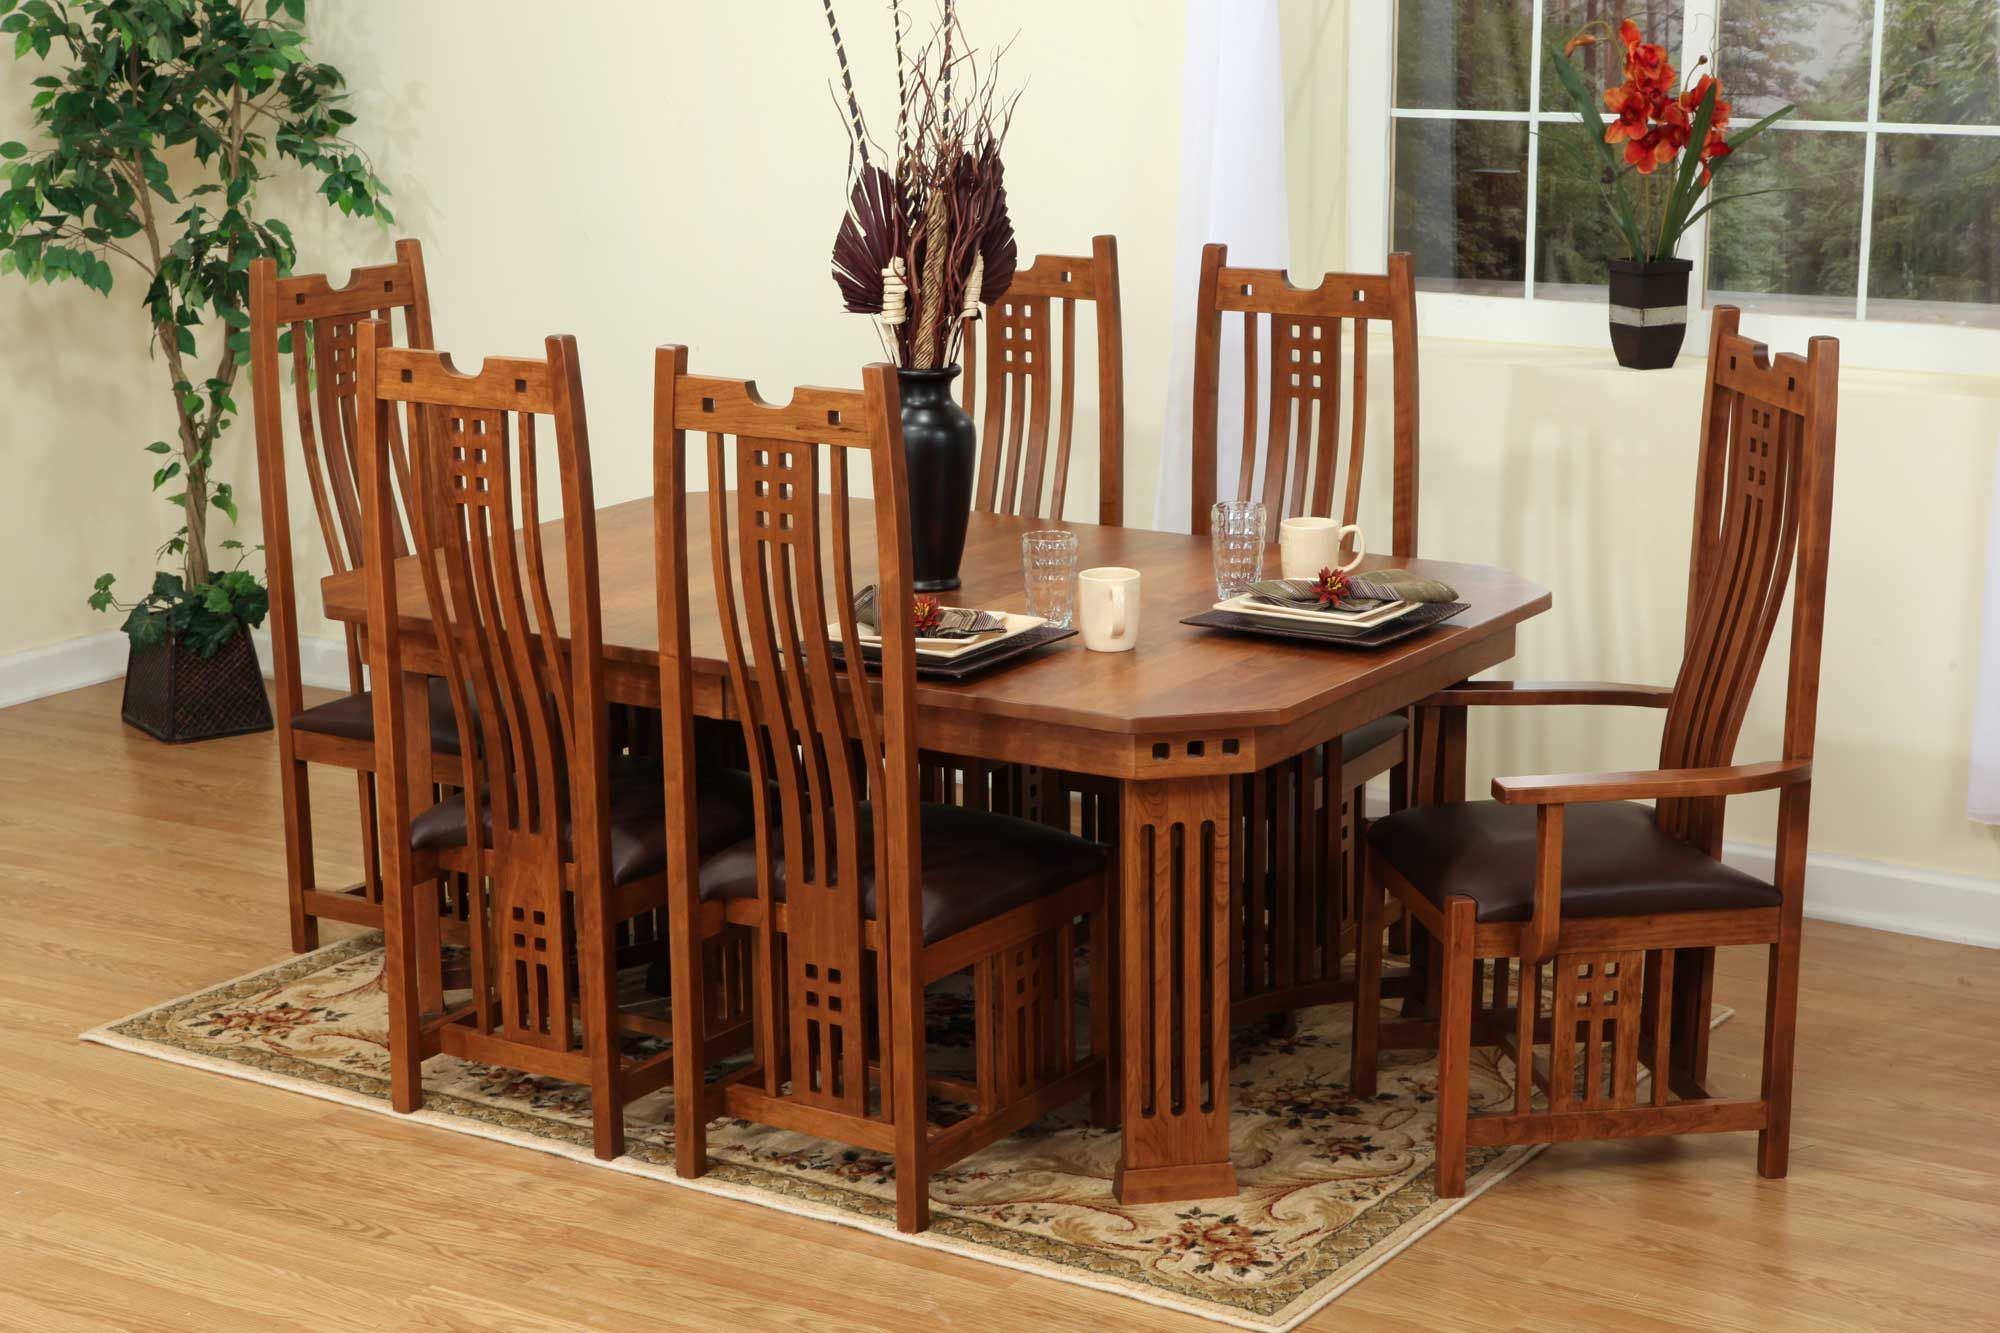 Dining Room Furniture San Diego Amusing Wonderful Mission Style Bedroom Furniture In San Diego And Decorating Design